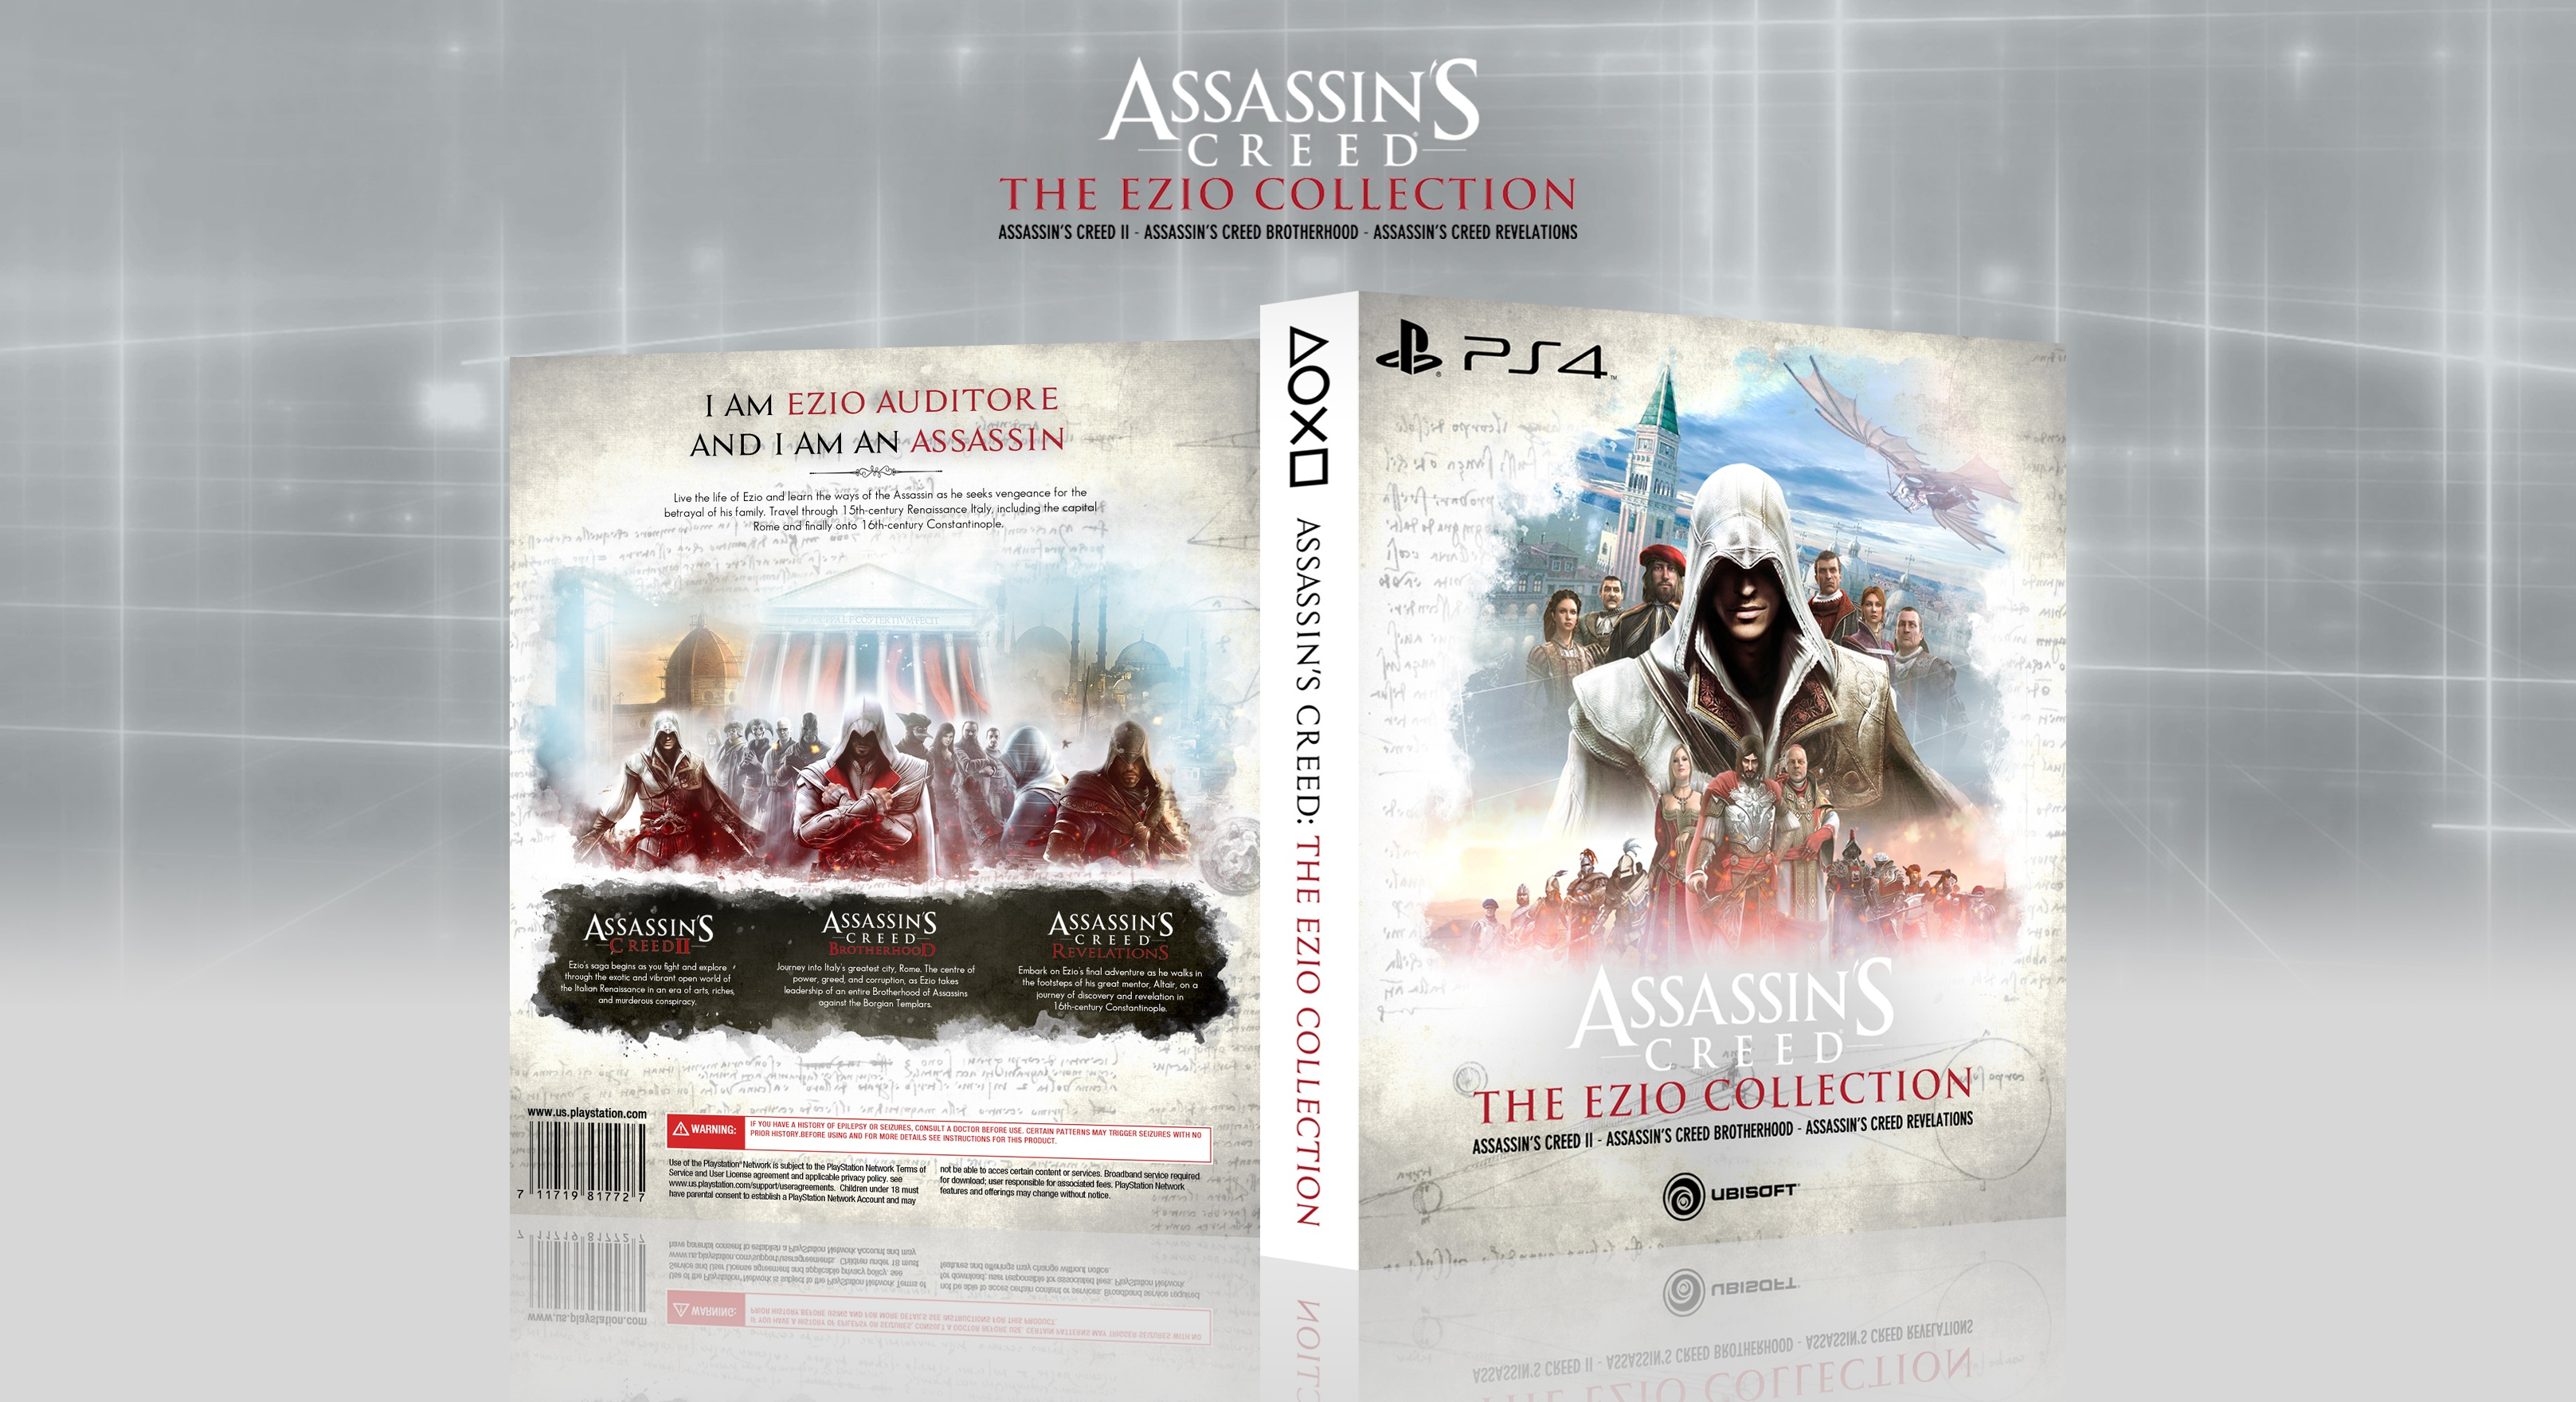 Assassin's Creed: The Ezio Collection box cover